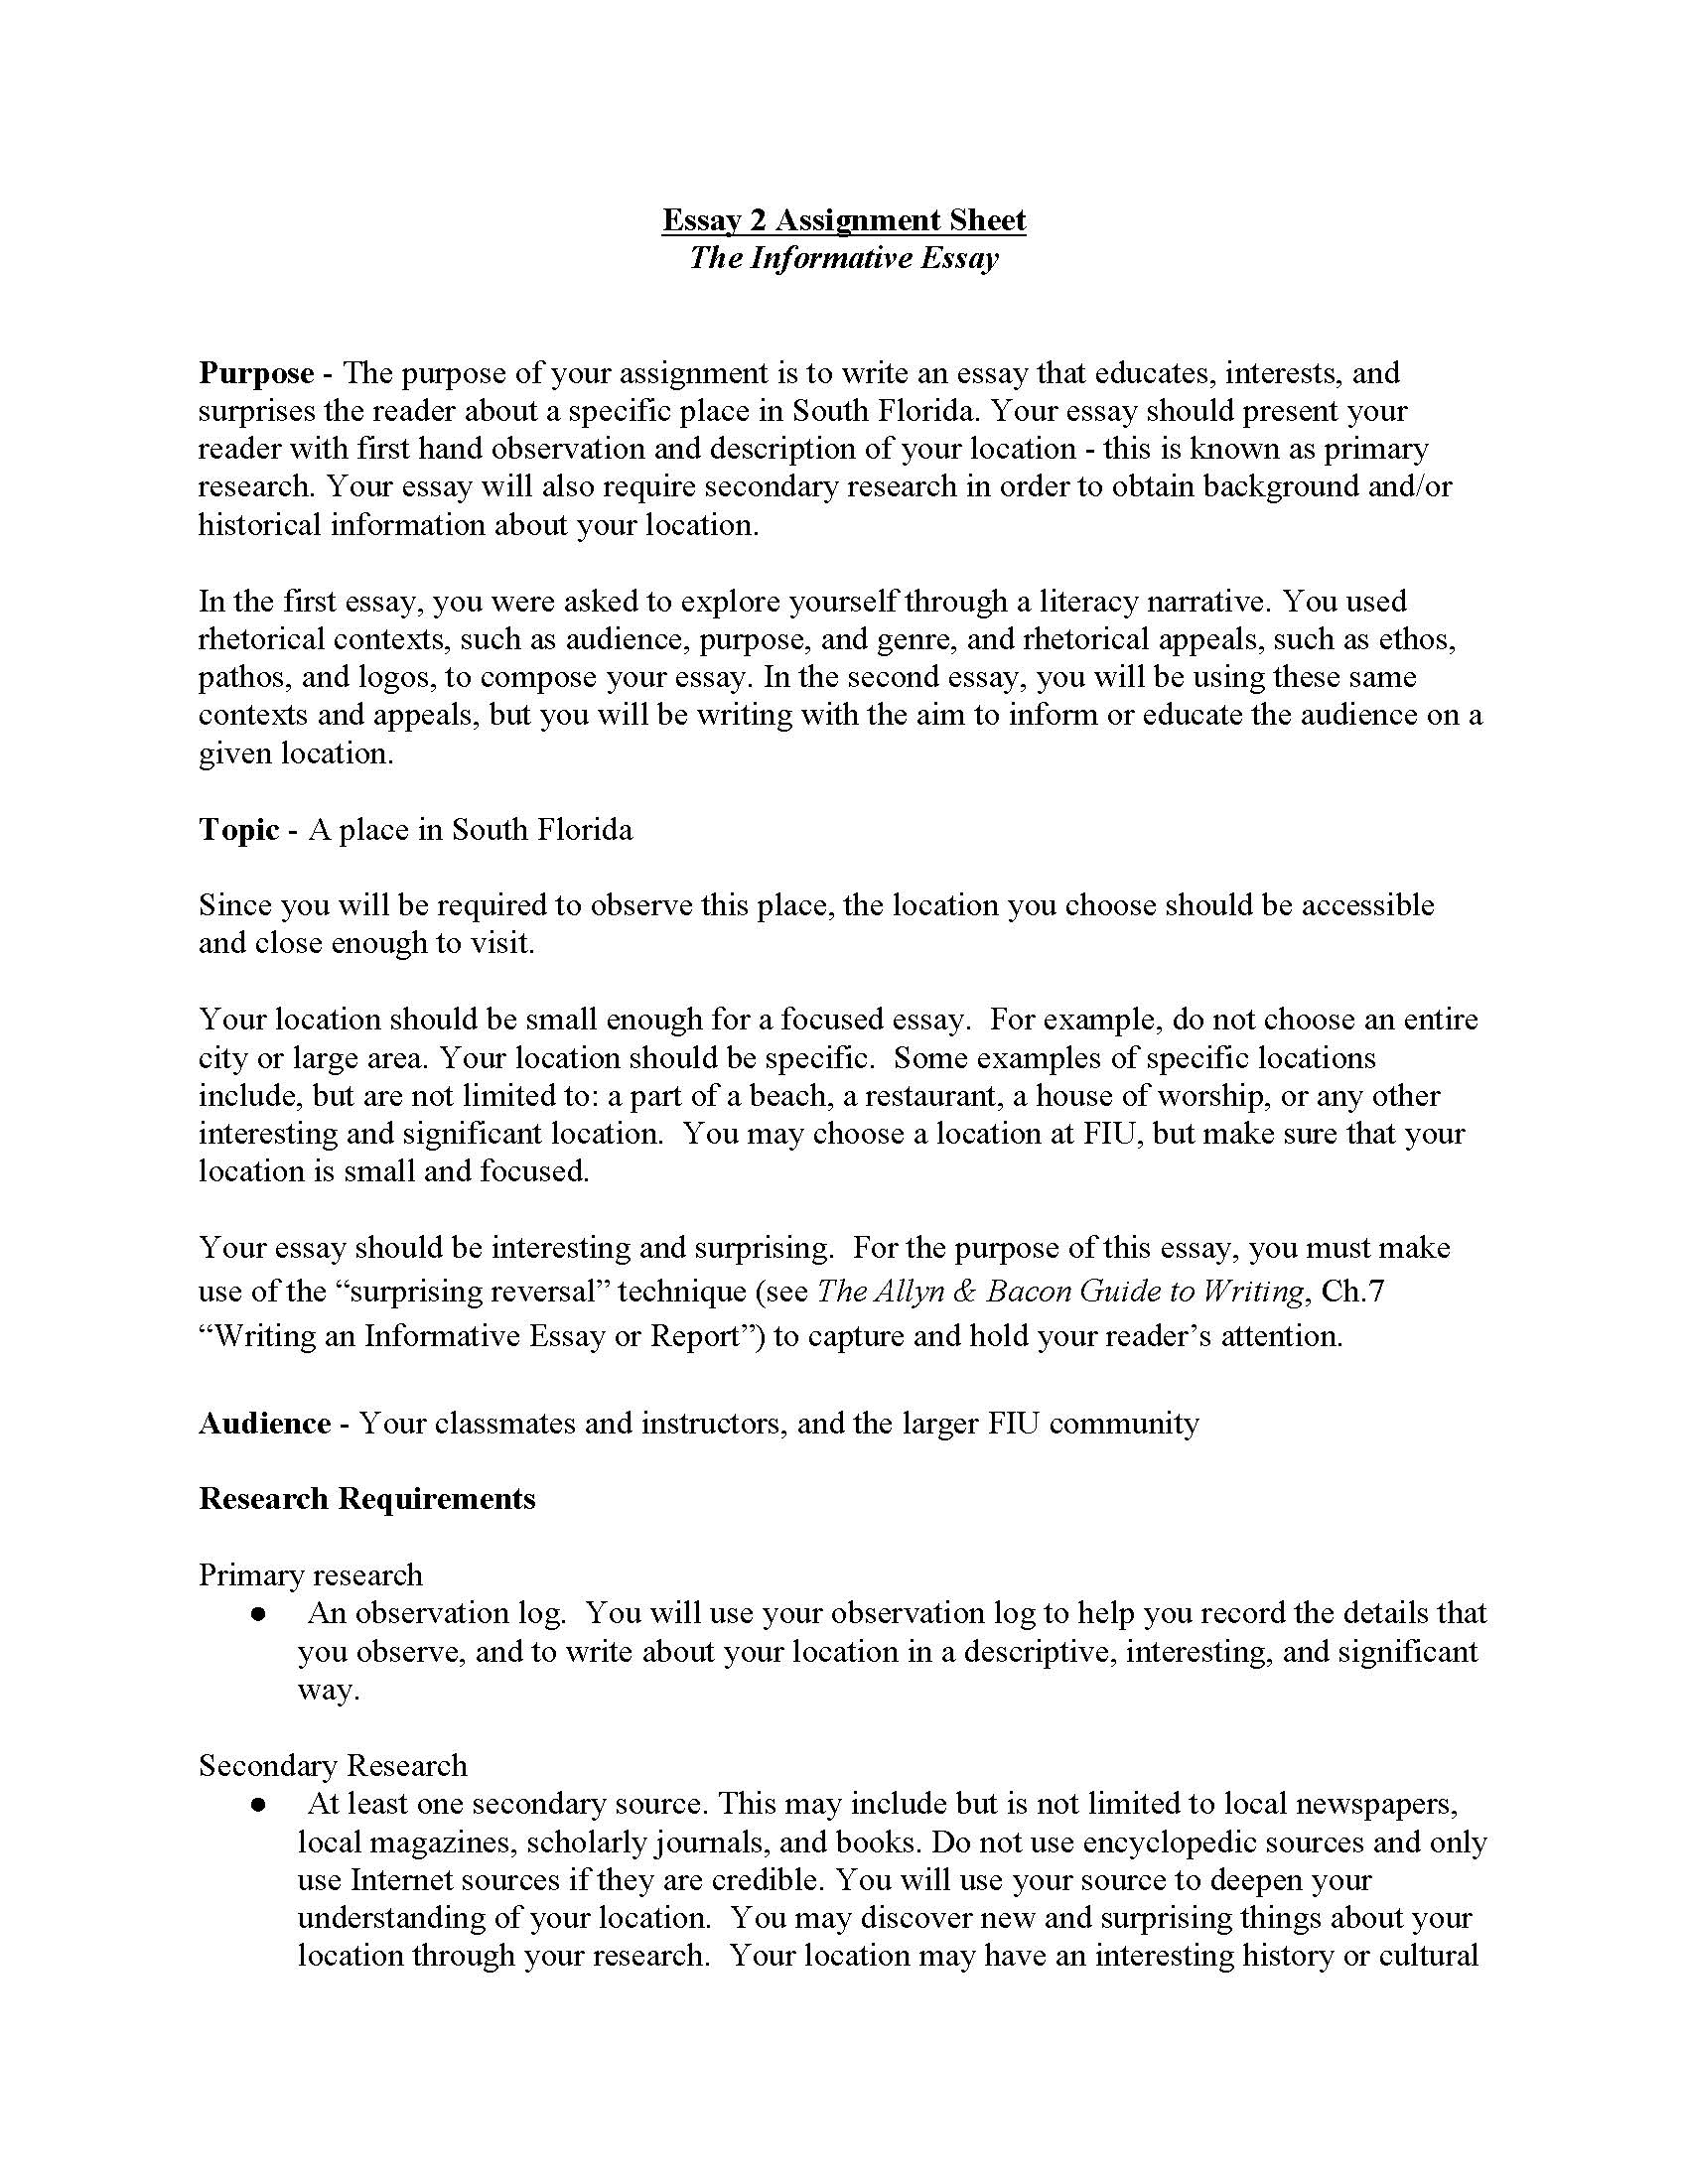 016 Informative Essay Unit Assignment Page 1 Example Sensational Hook Generator Hooks About Feminism College Examples Full